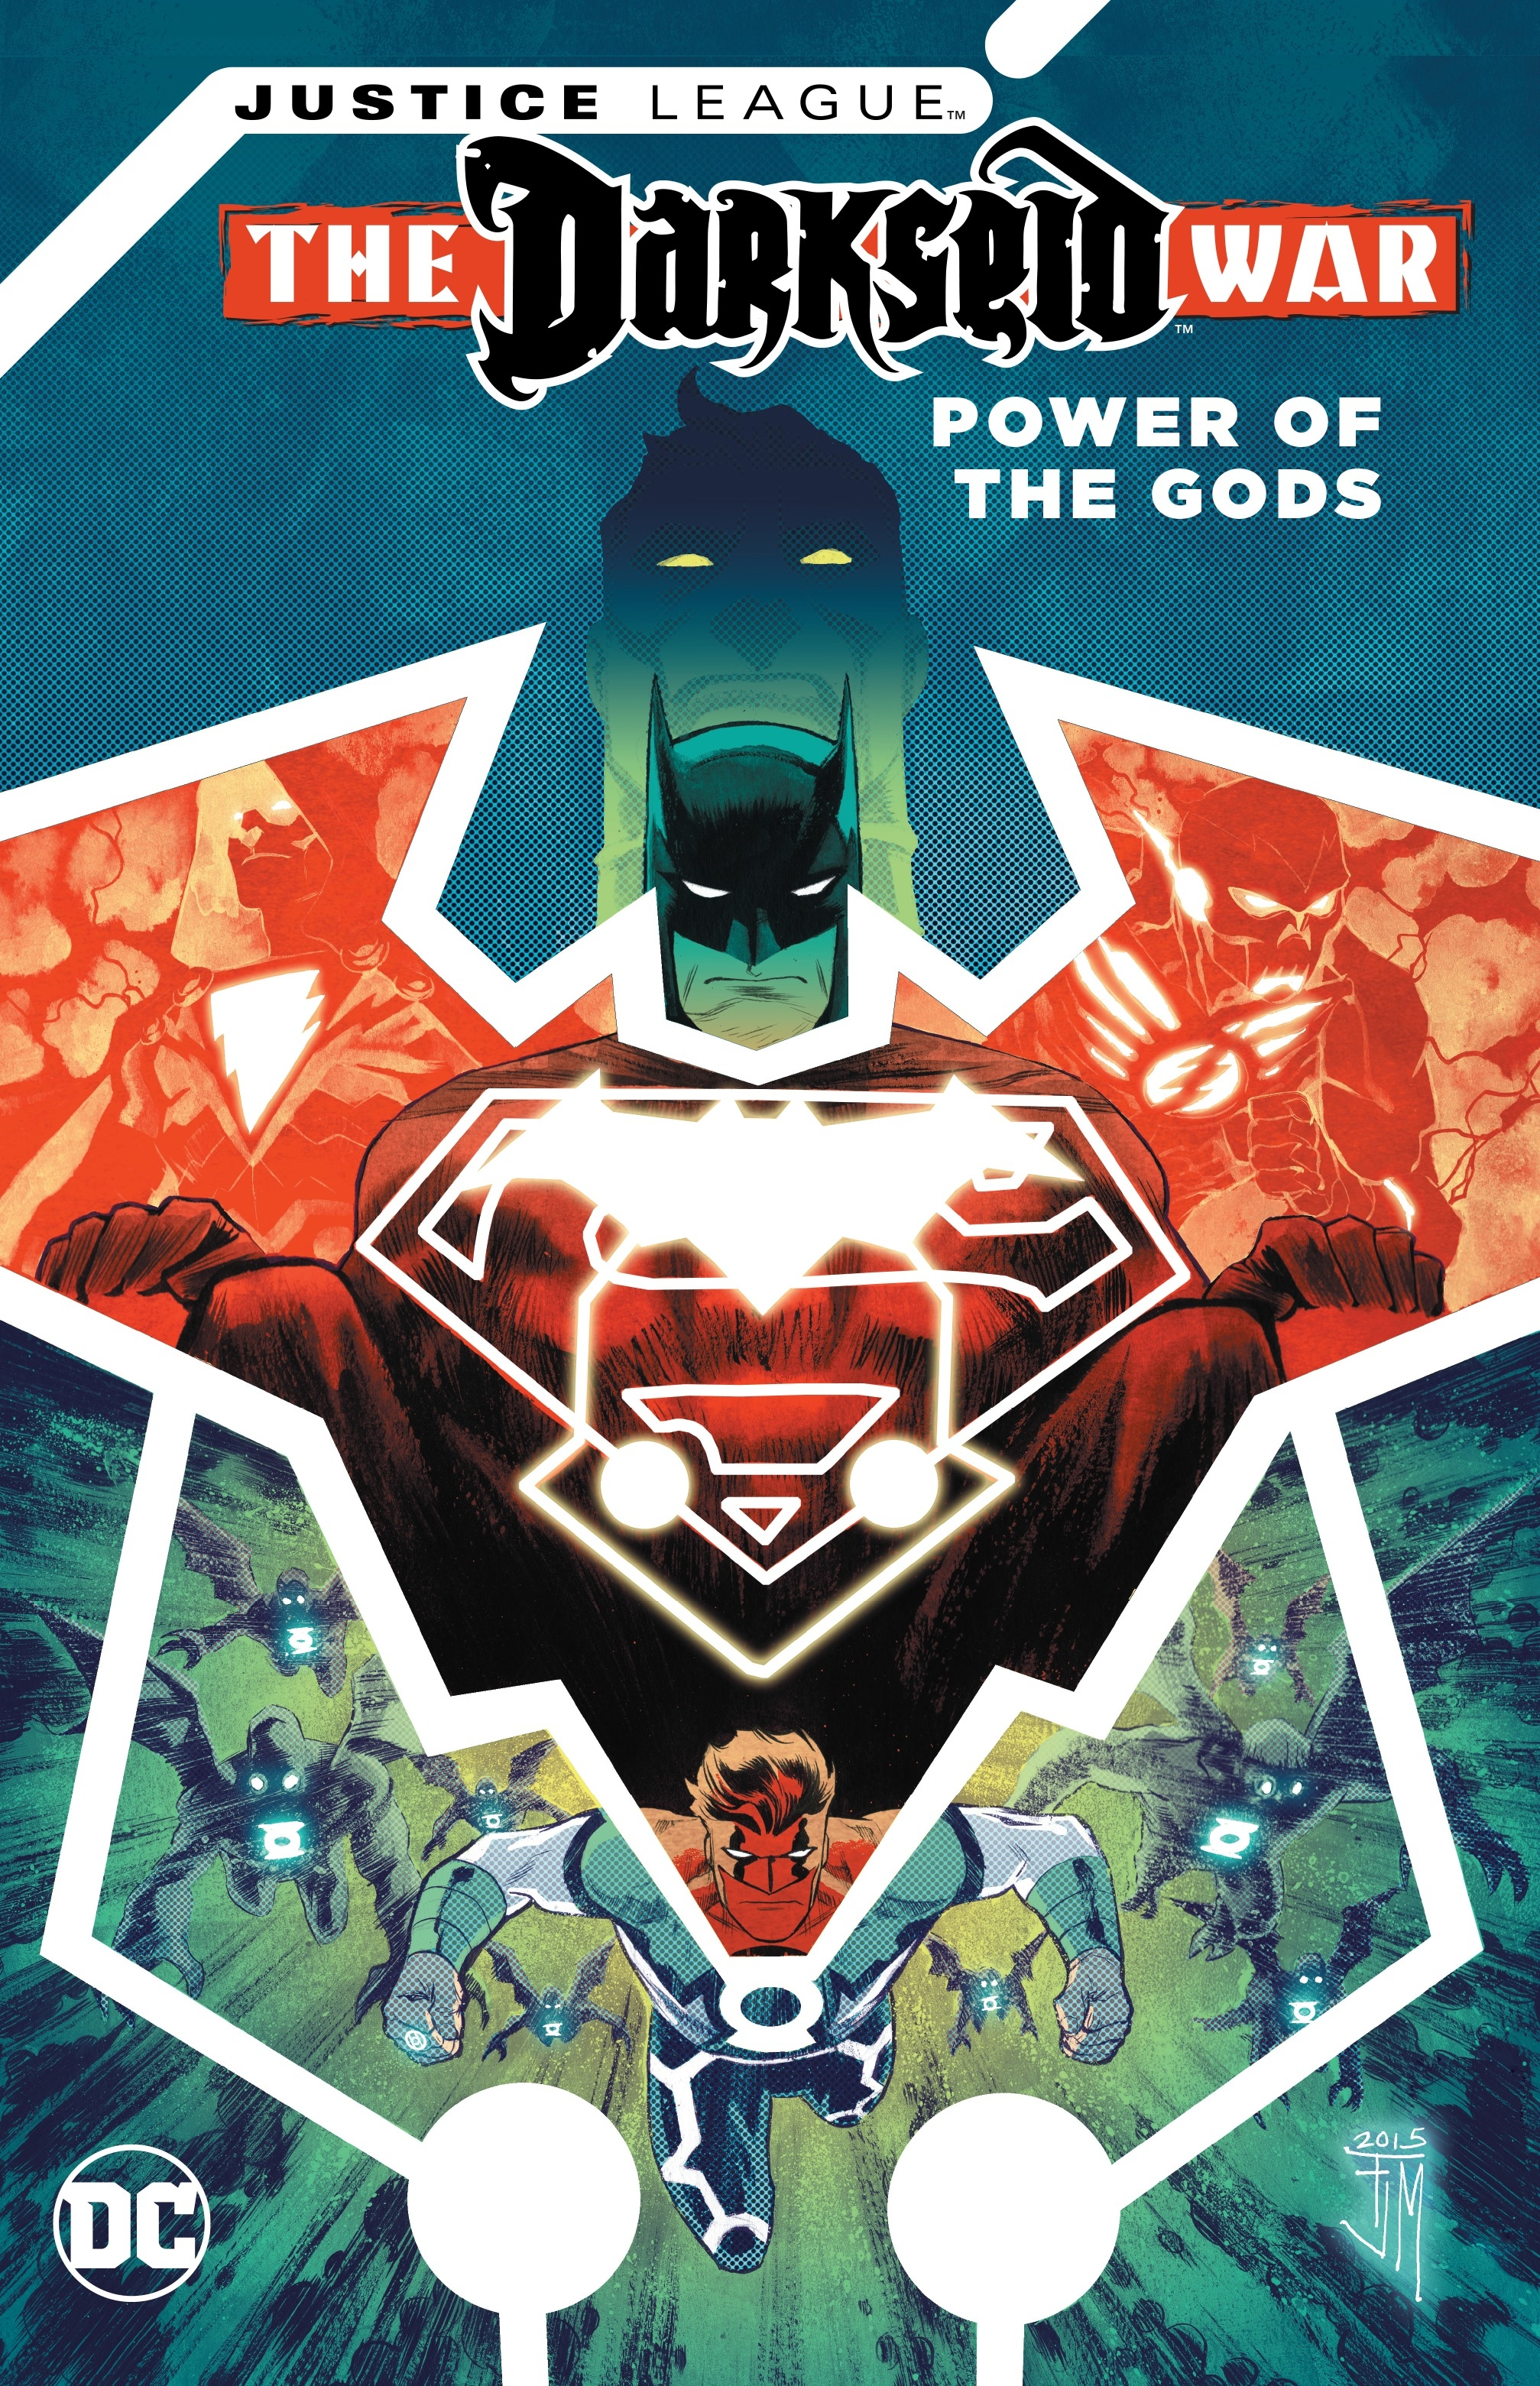 Justice League Gods And Men (Darkseid War) by Francis Manapul